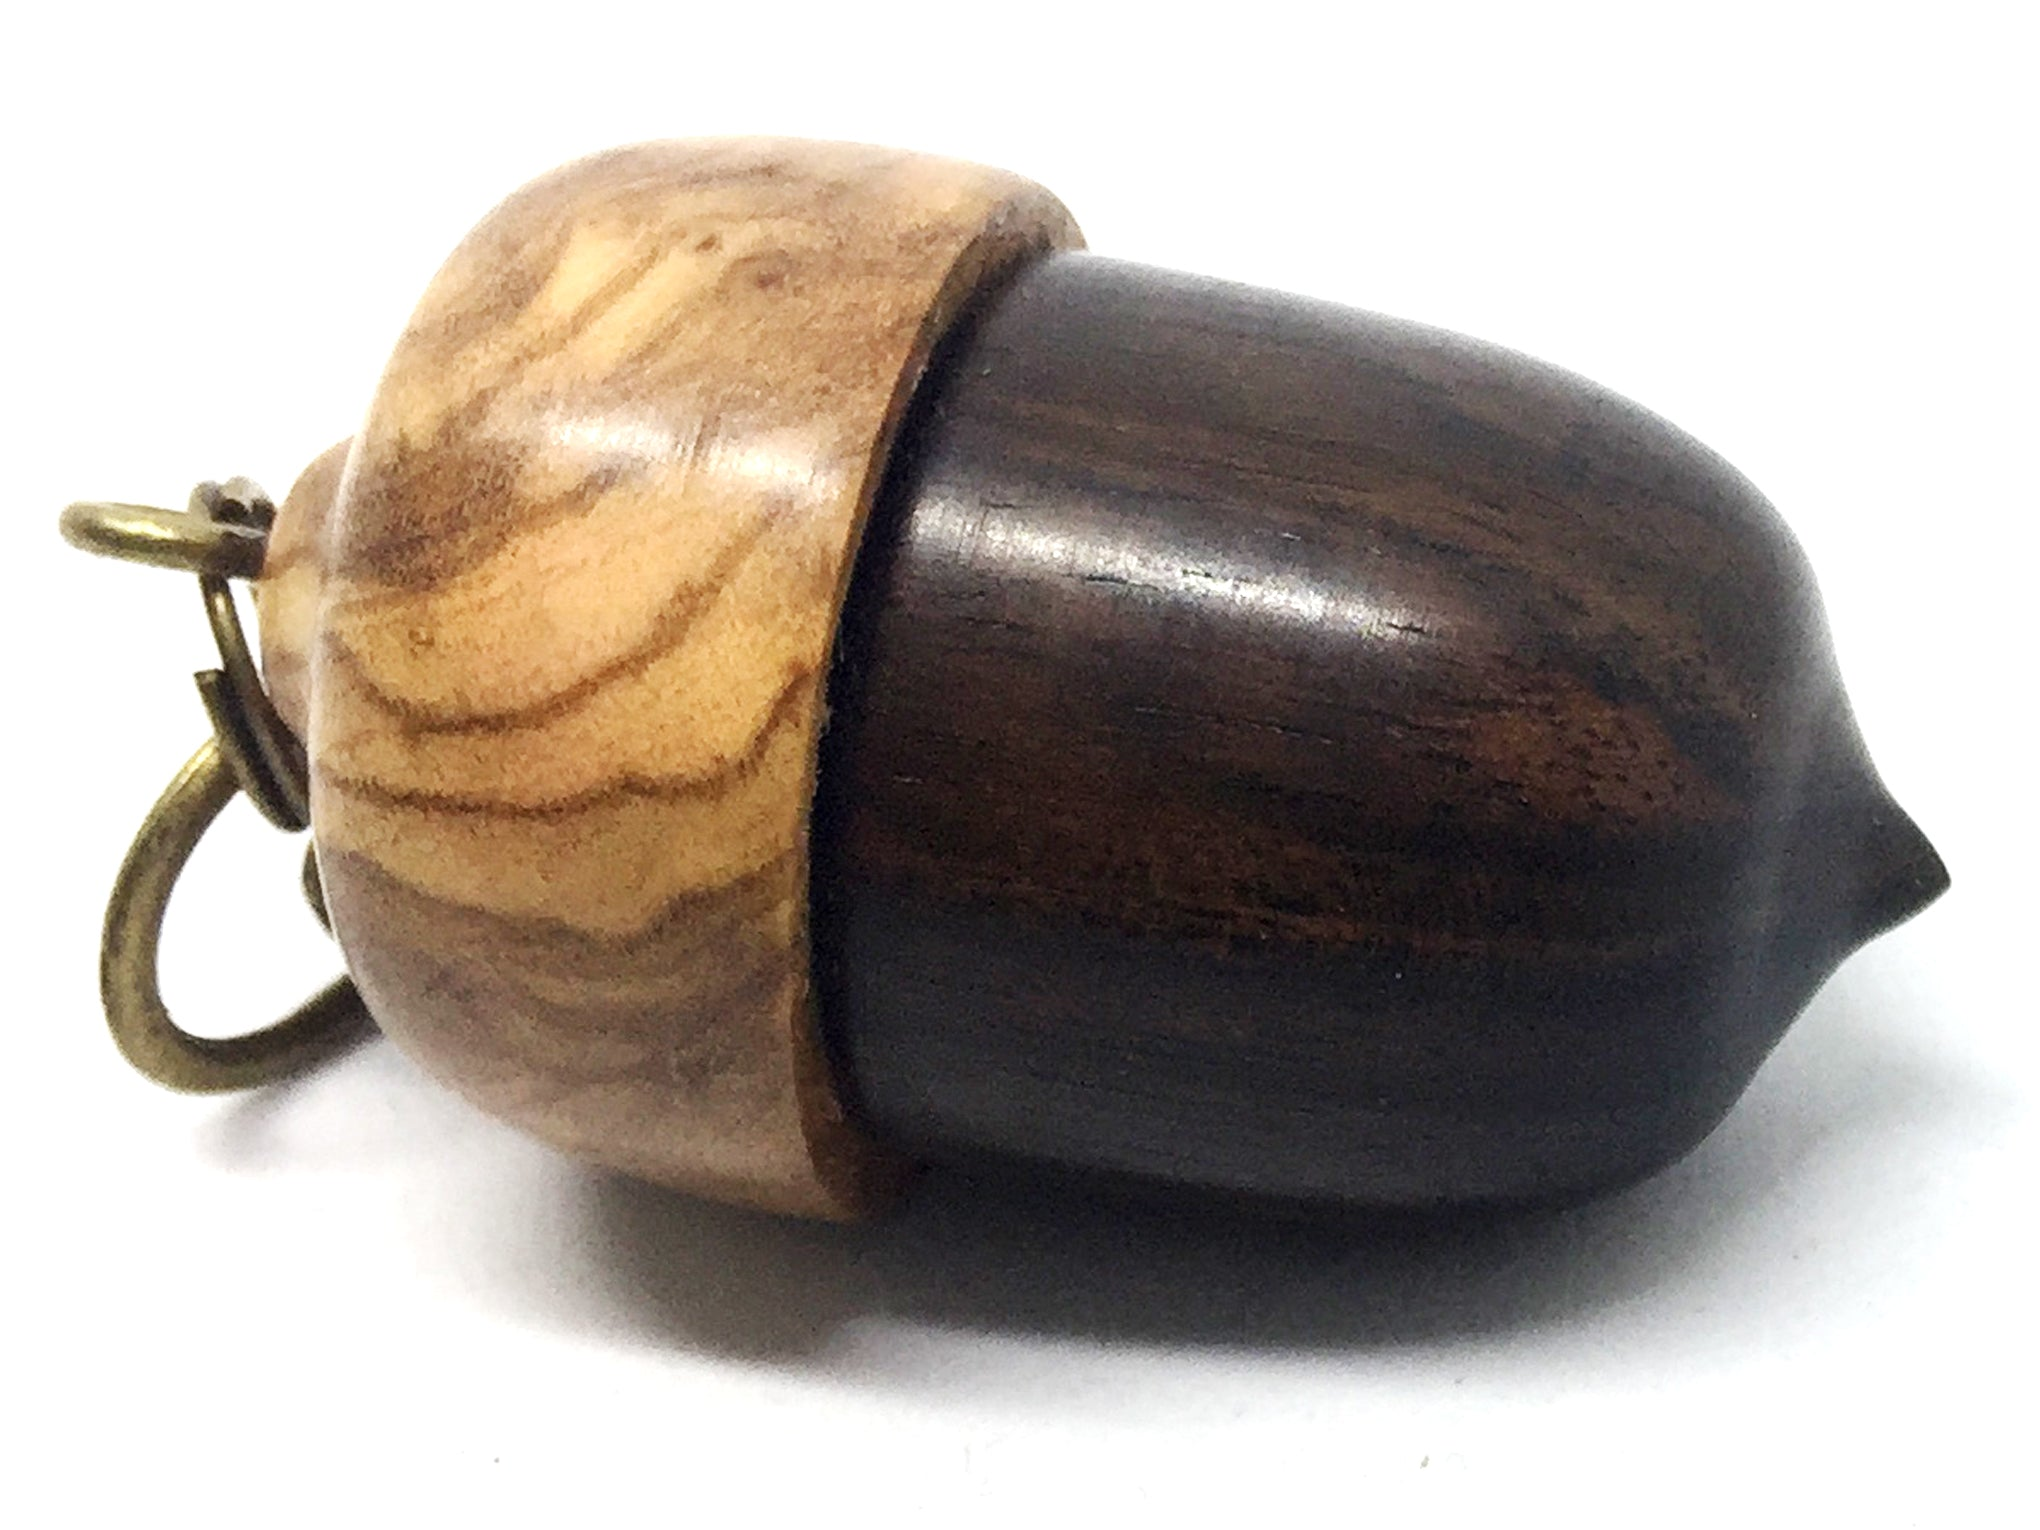 LV-4339 Acorn Pendant Box, Secret Compartment from Mun Ebony with Olive Burl cap-SCREW CAP